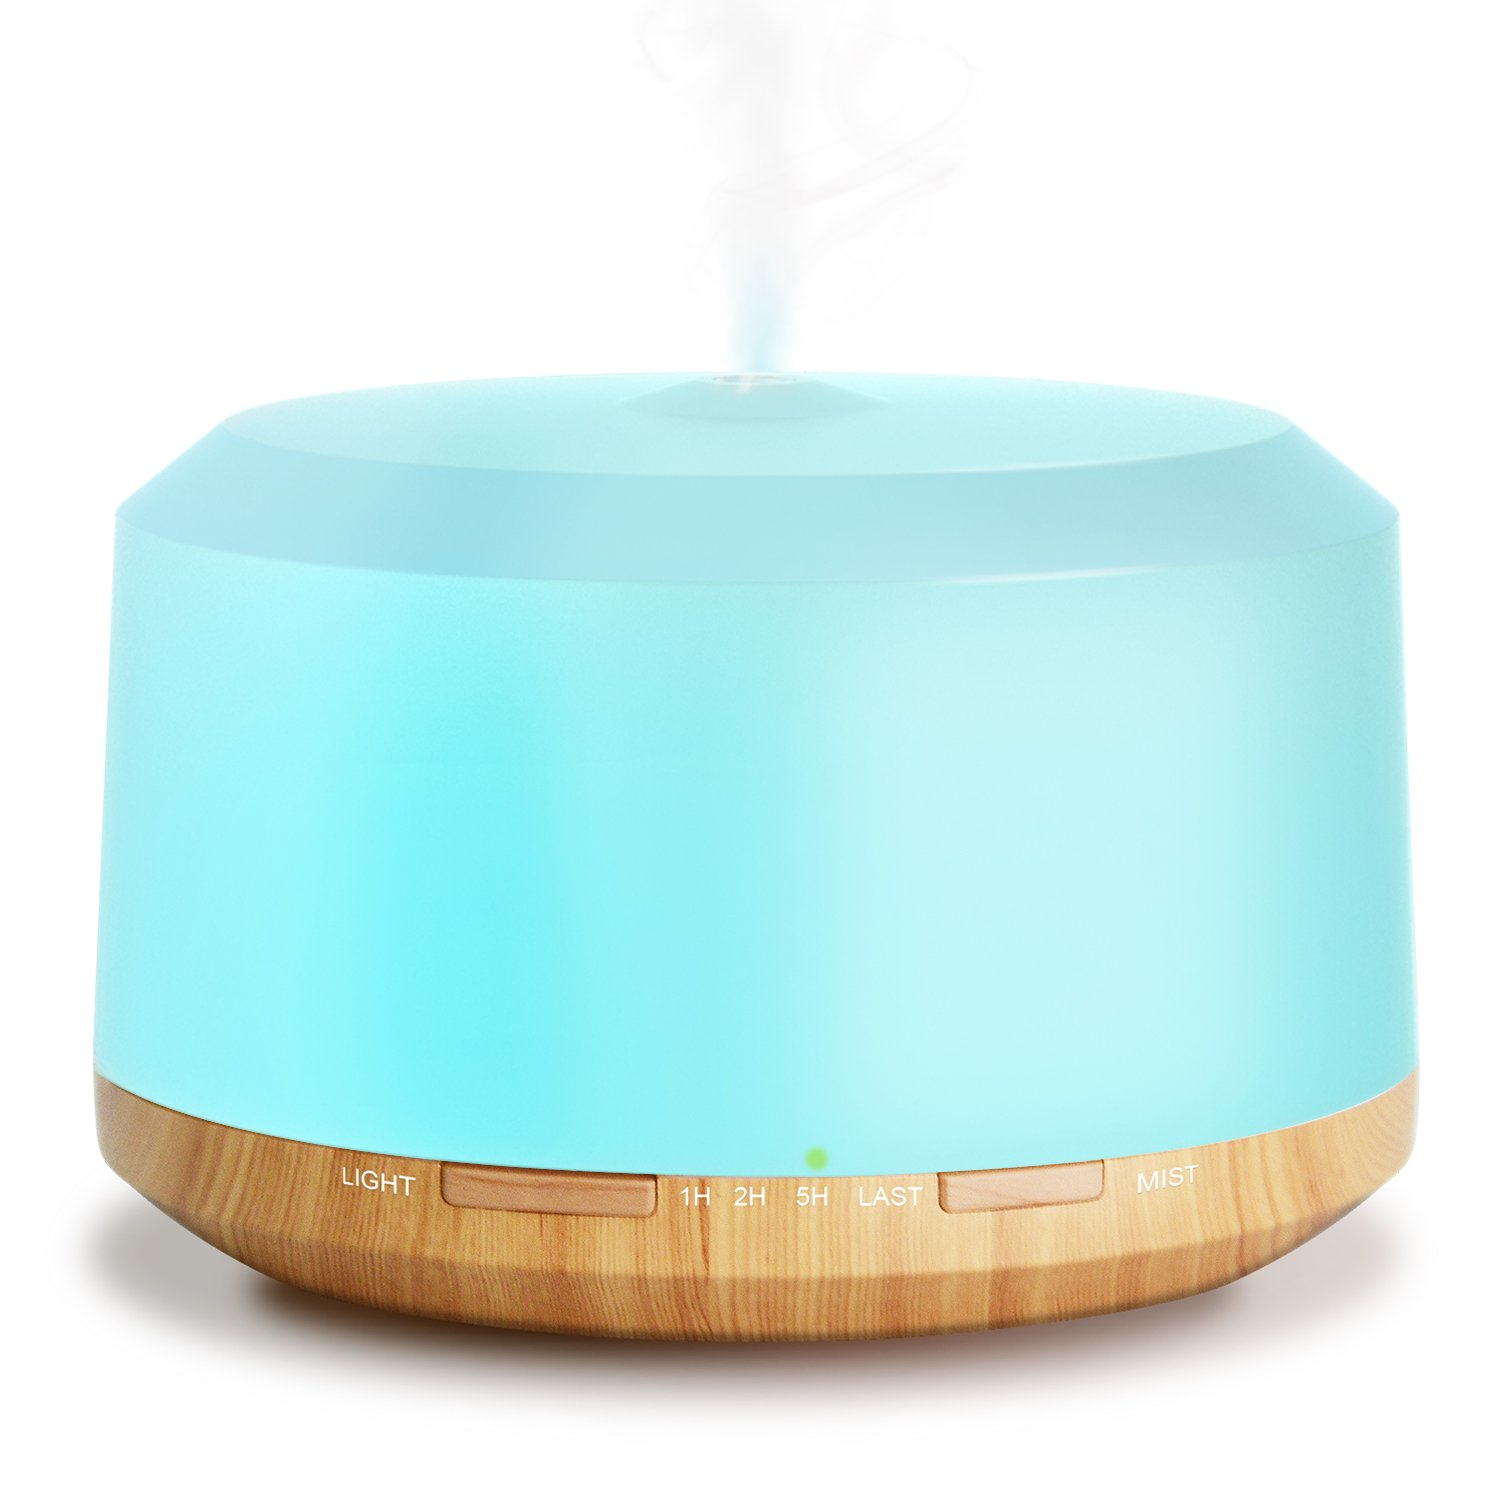 New 450ml Half Wood Grain Aromatherapy Essential Oil Diffuser, ZOOKKI Ultrasonic Diffusers Humidifiers for Essential Oils with 8 Color Changing Lights 4 Timer Setting and Water-less 1 Pack